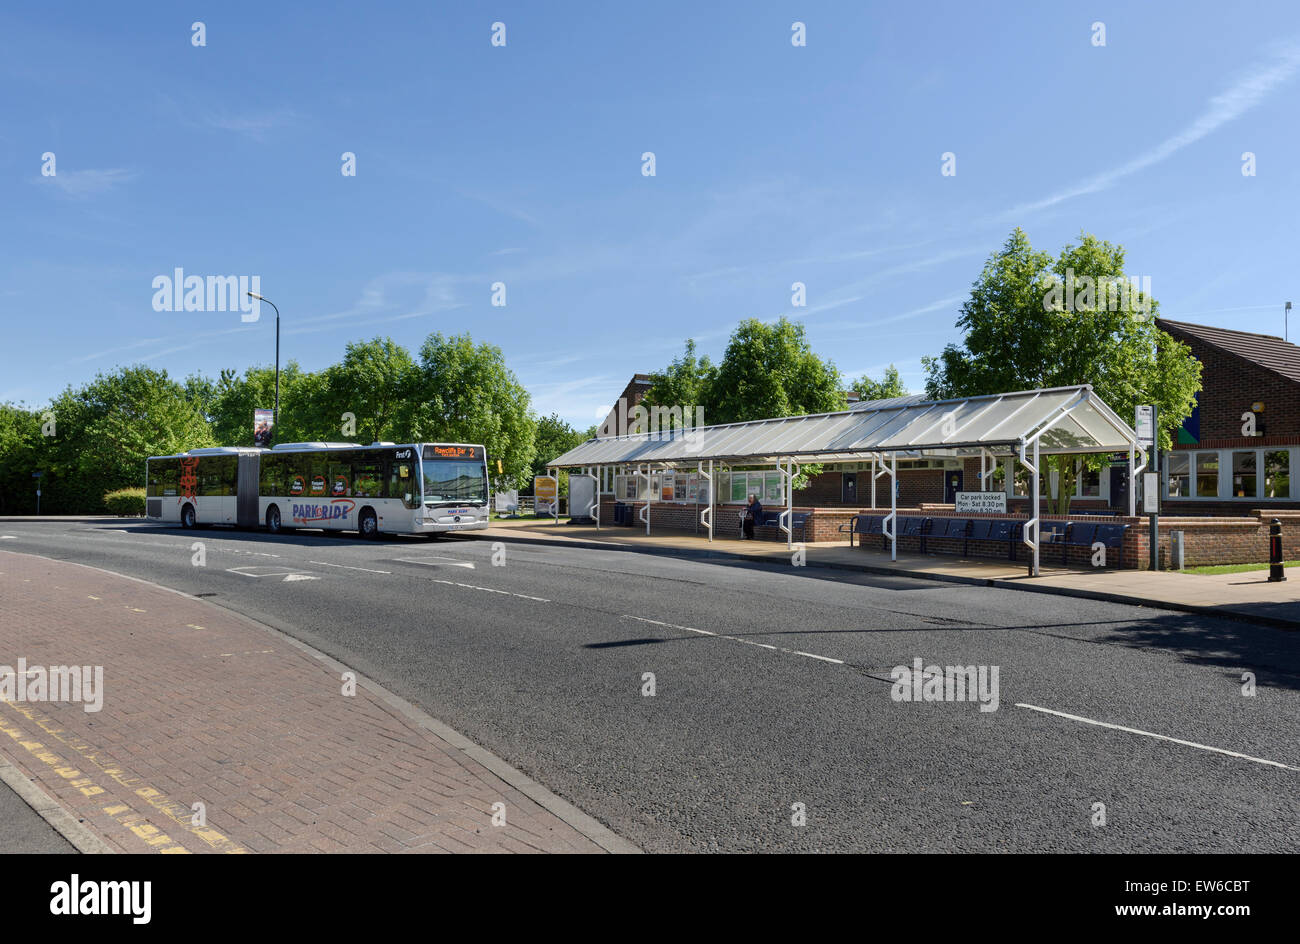 Park and Ride Terminus - Stock Image